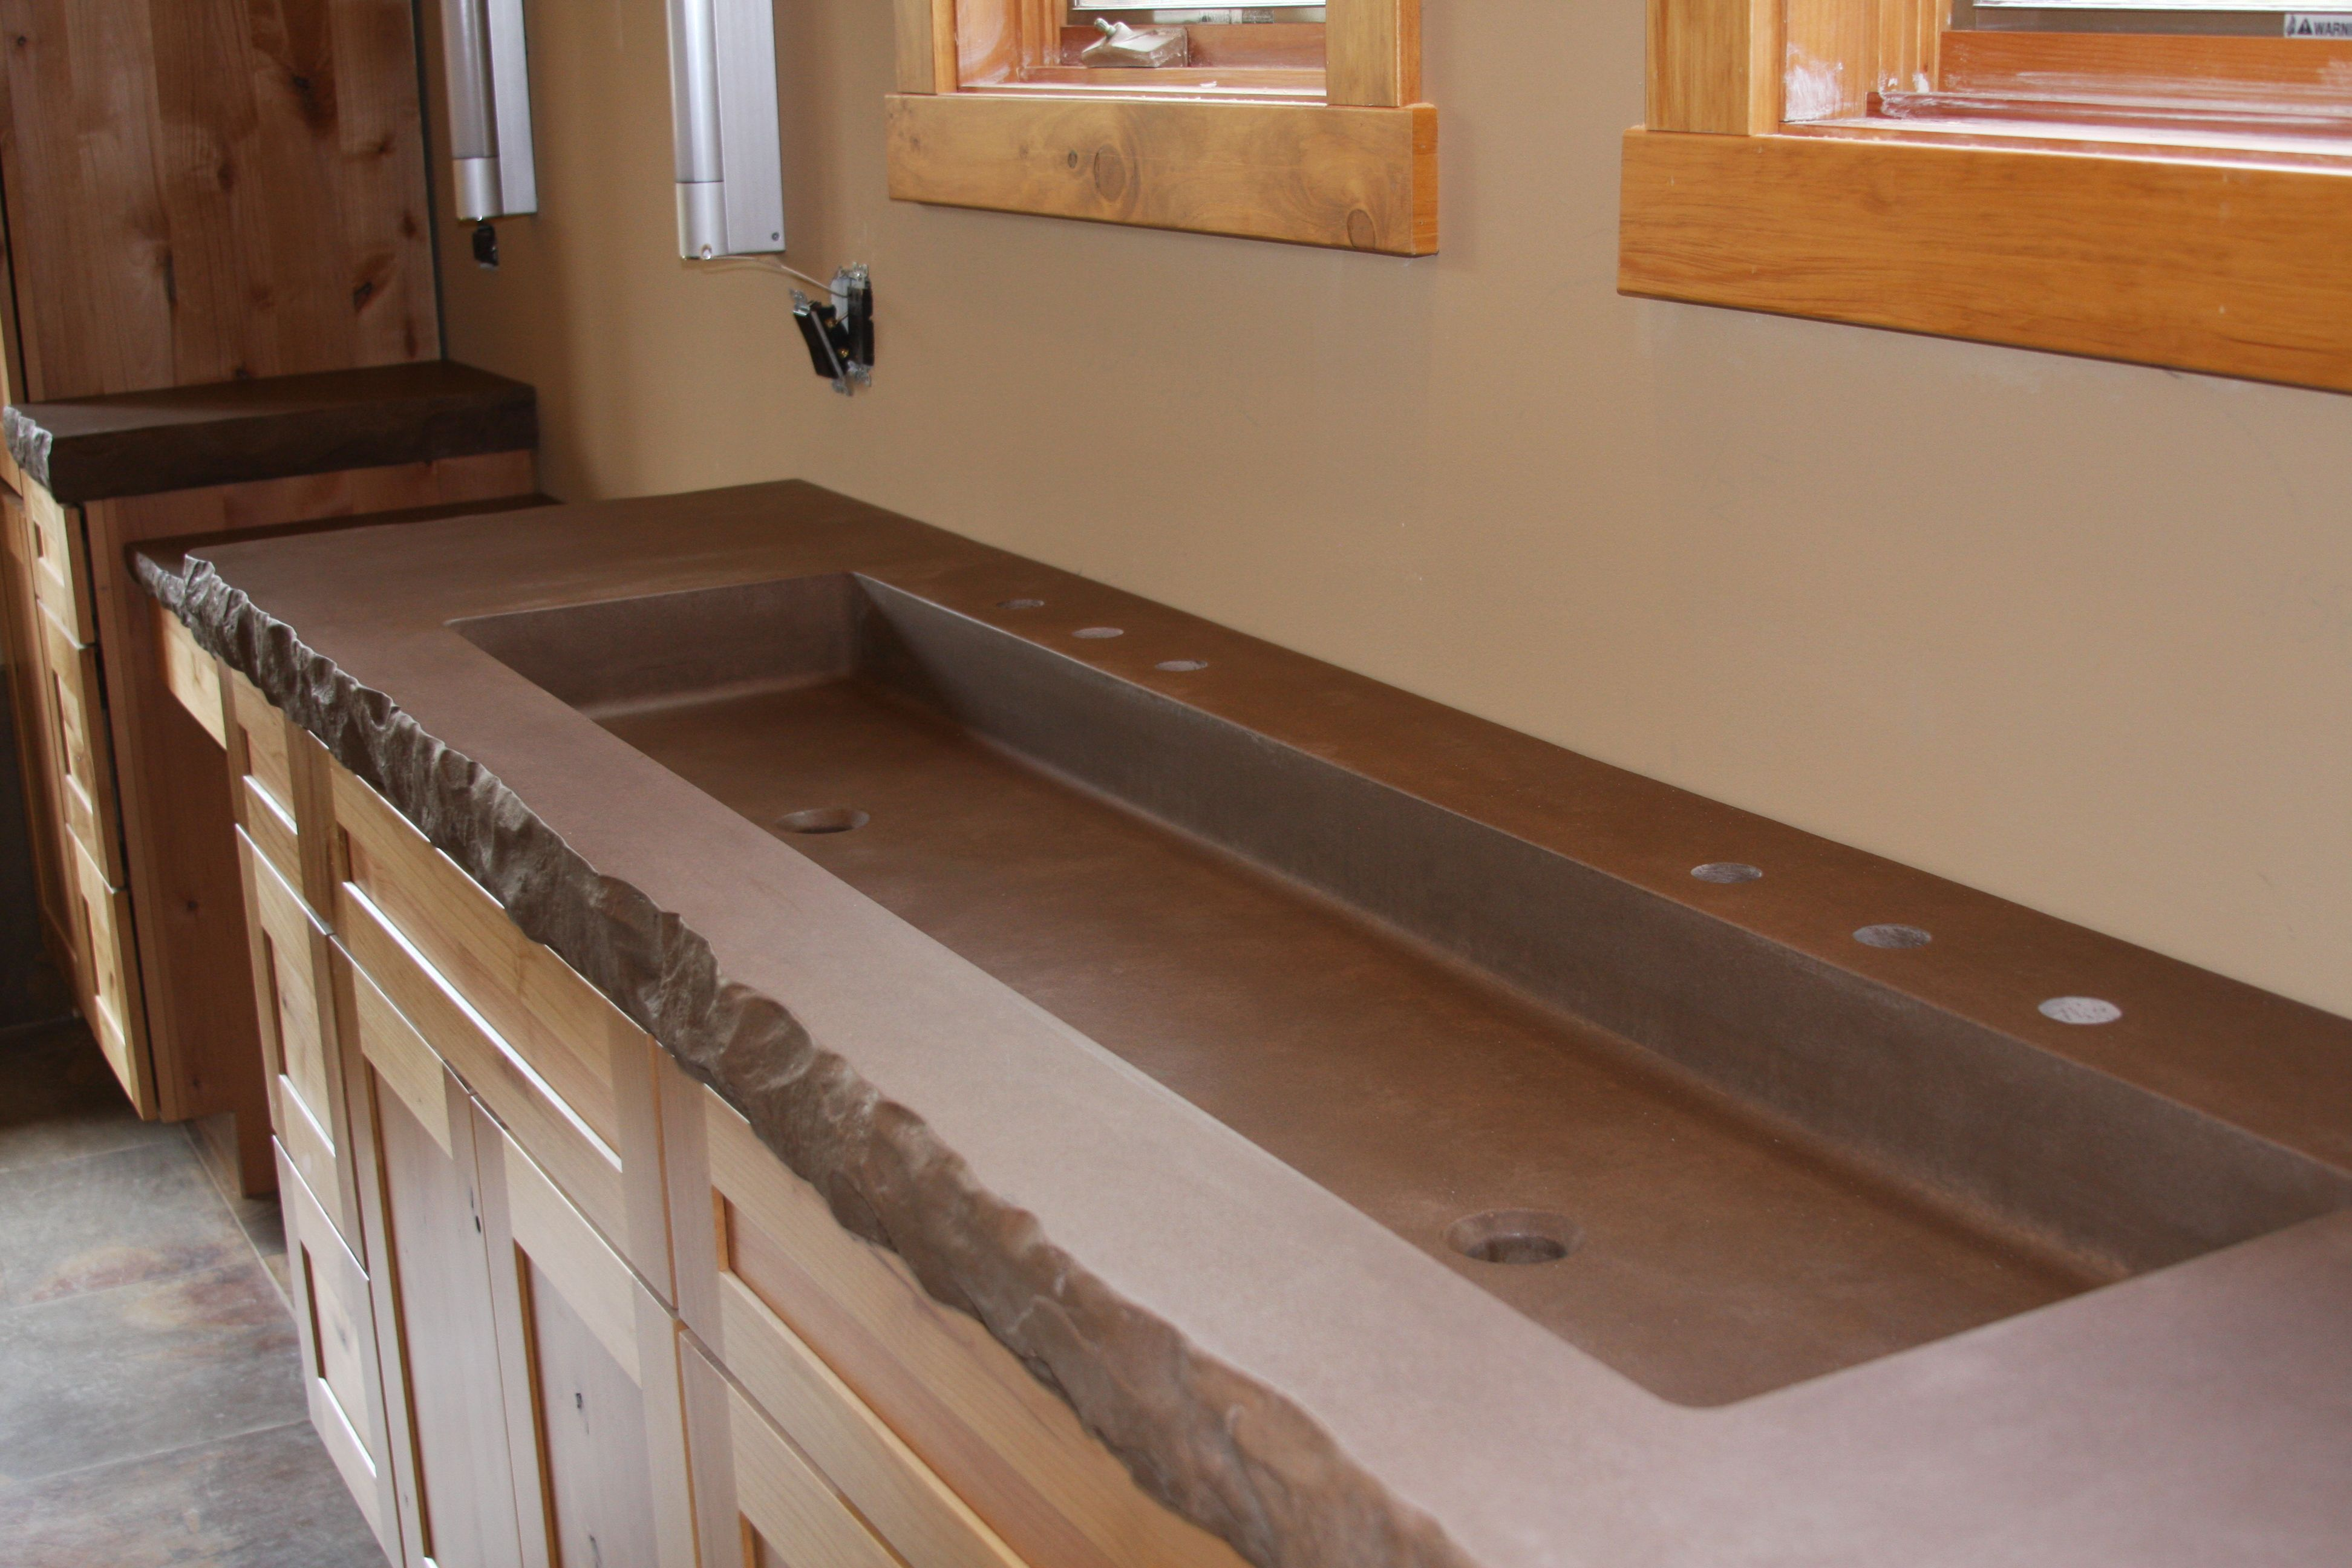 Charming Trough Sink Kitchen #11: 1000+ Images About Trough Sinks On Pinterest | Cement Bathroom, Basin Sink And Trough Sink Bathroom